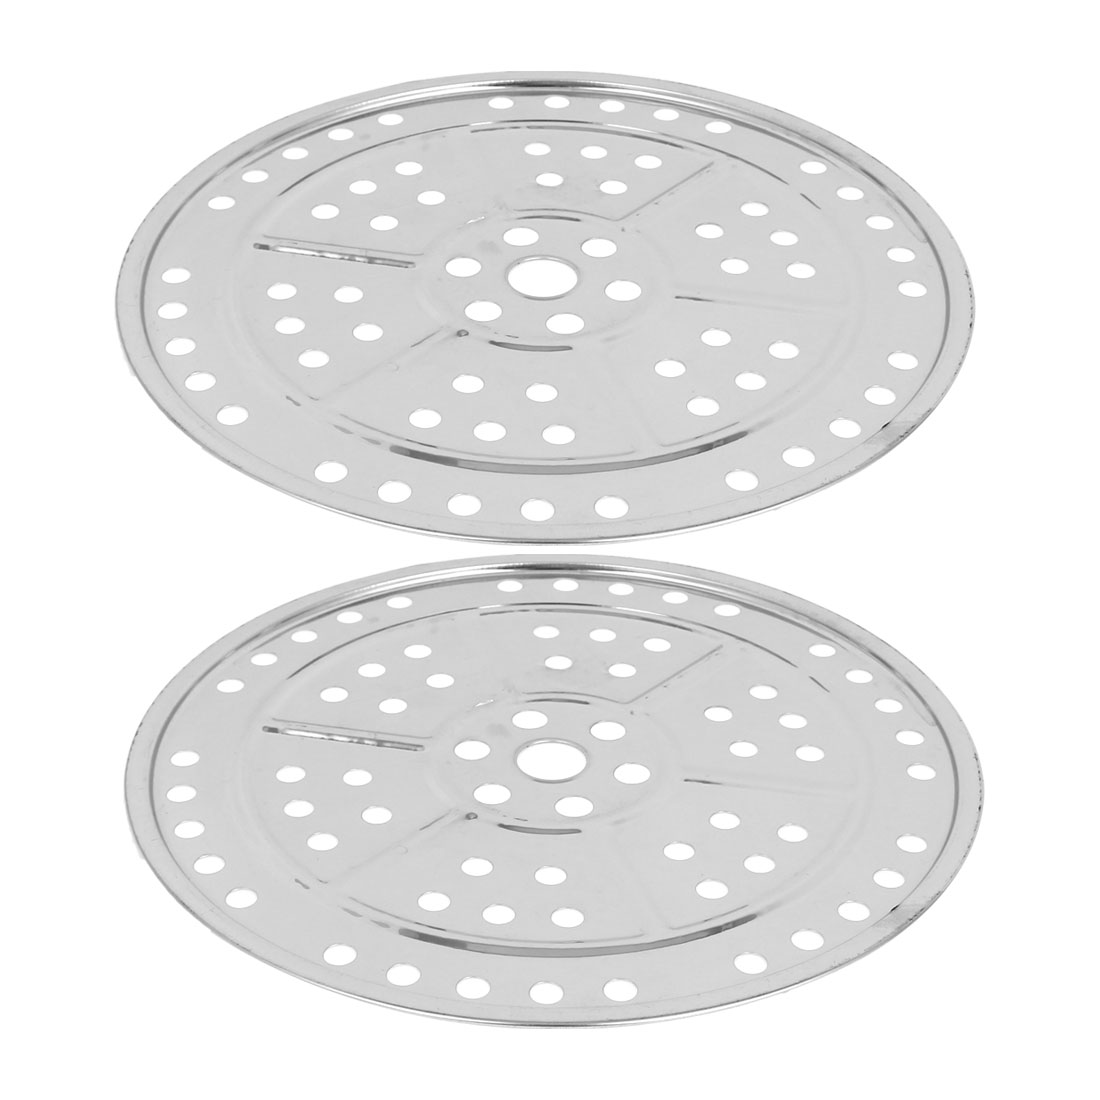 "2pcs 9.4"" Stainless Steel Kitchen Cooking Steamer Rack Plate Silver Tone"